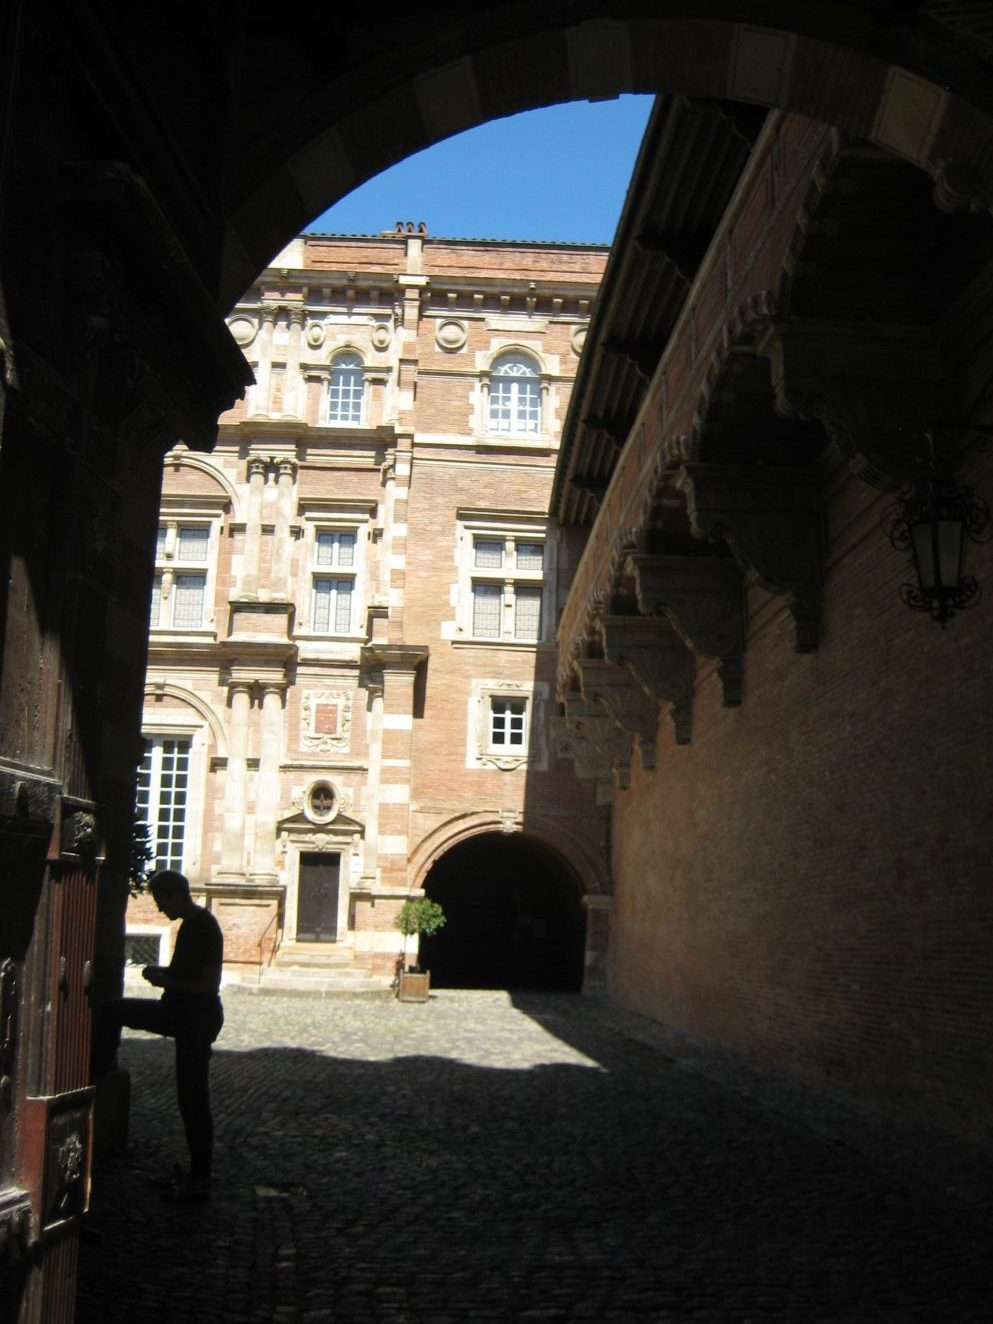 Peering inside the courtyard at Hotel Assezat in Toulouse